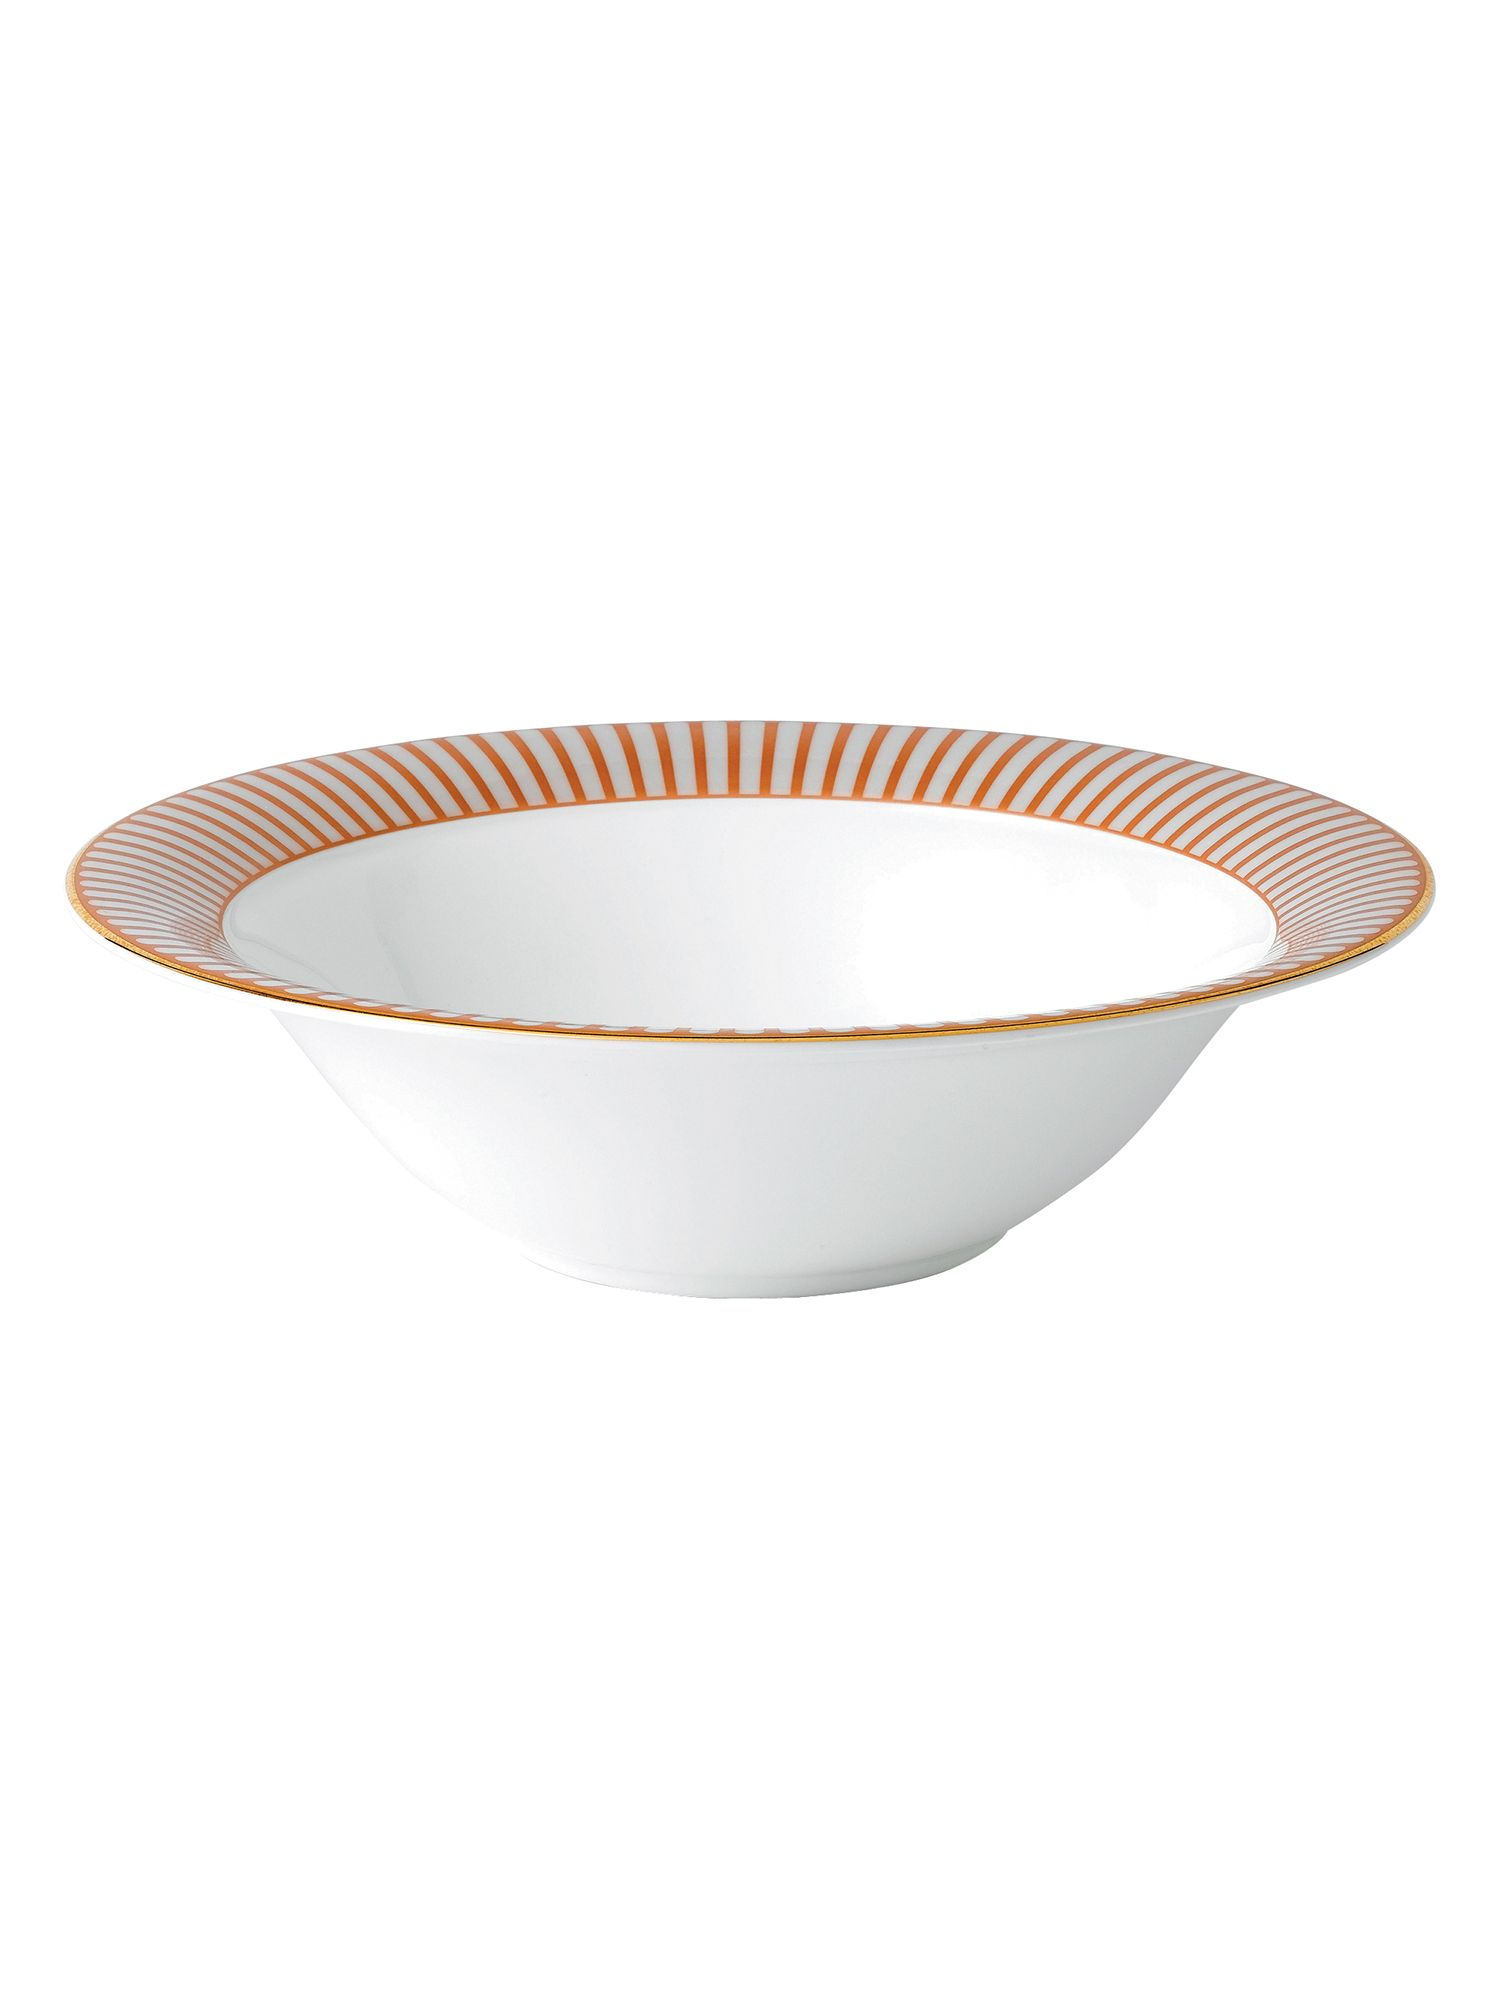 Palladian round serving bowl 25cm